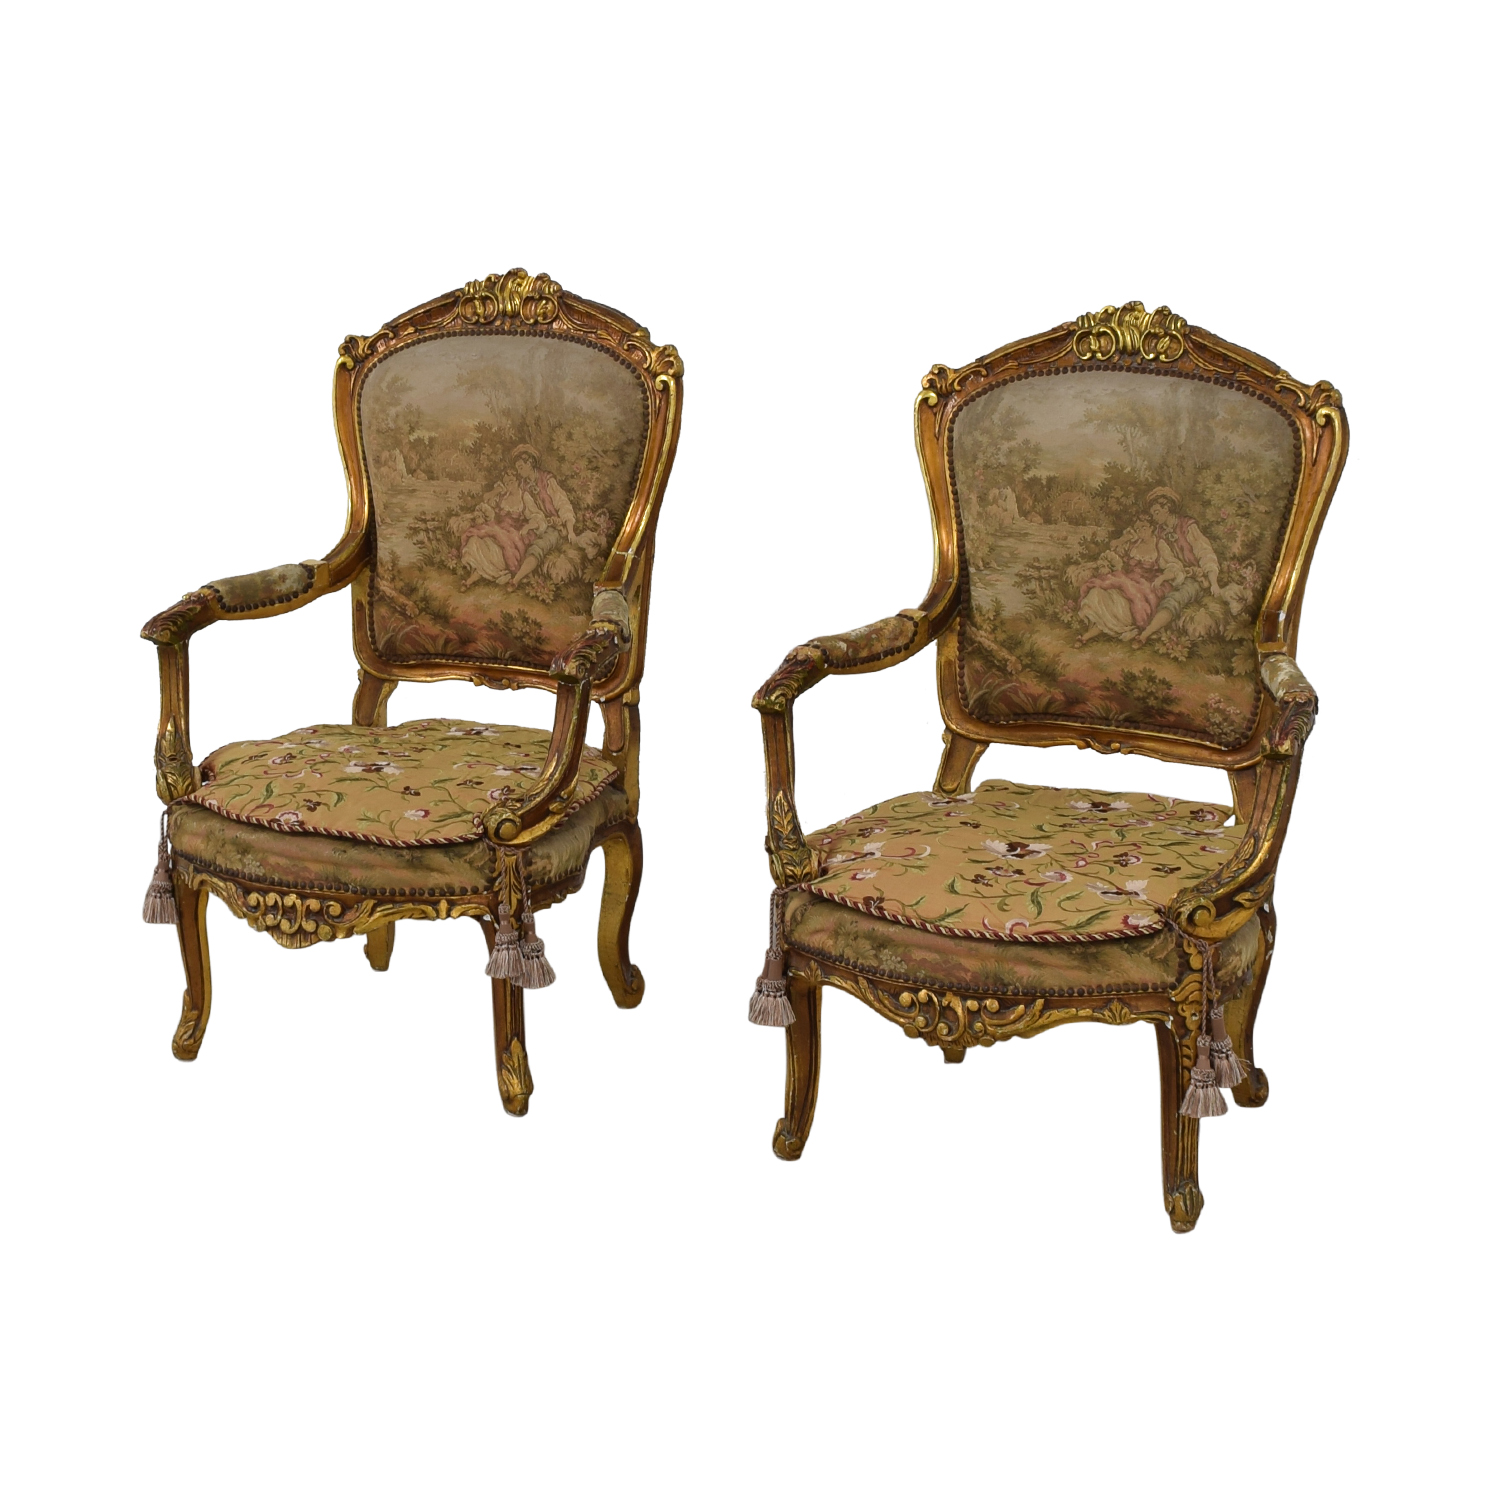 Distressed Antique Louis XV Accent Chairs for sale